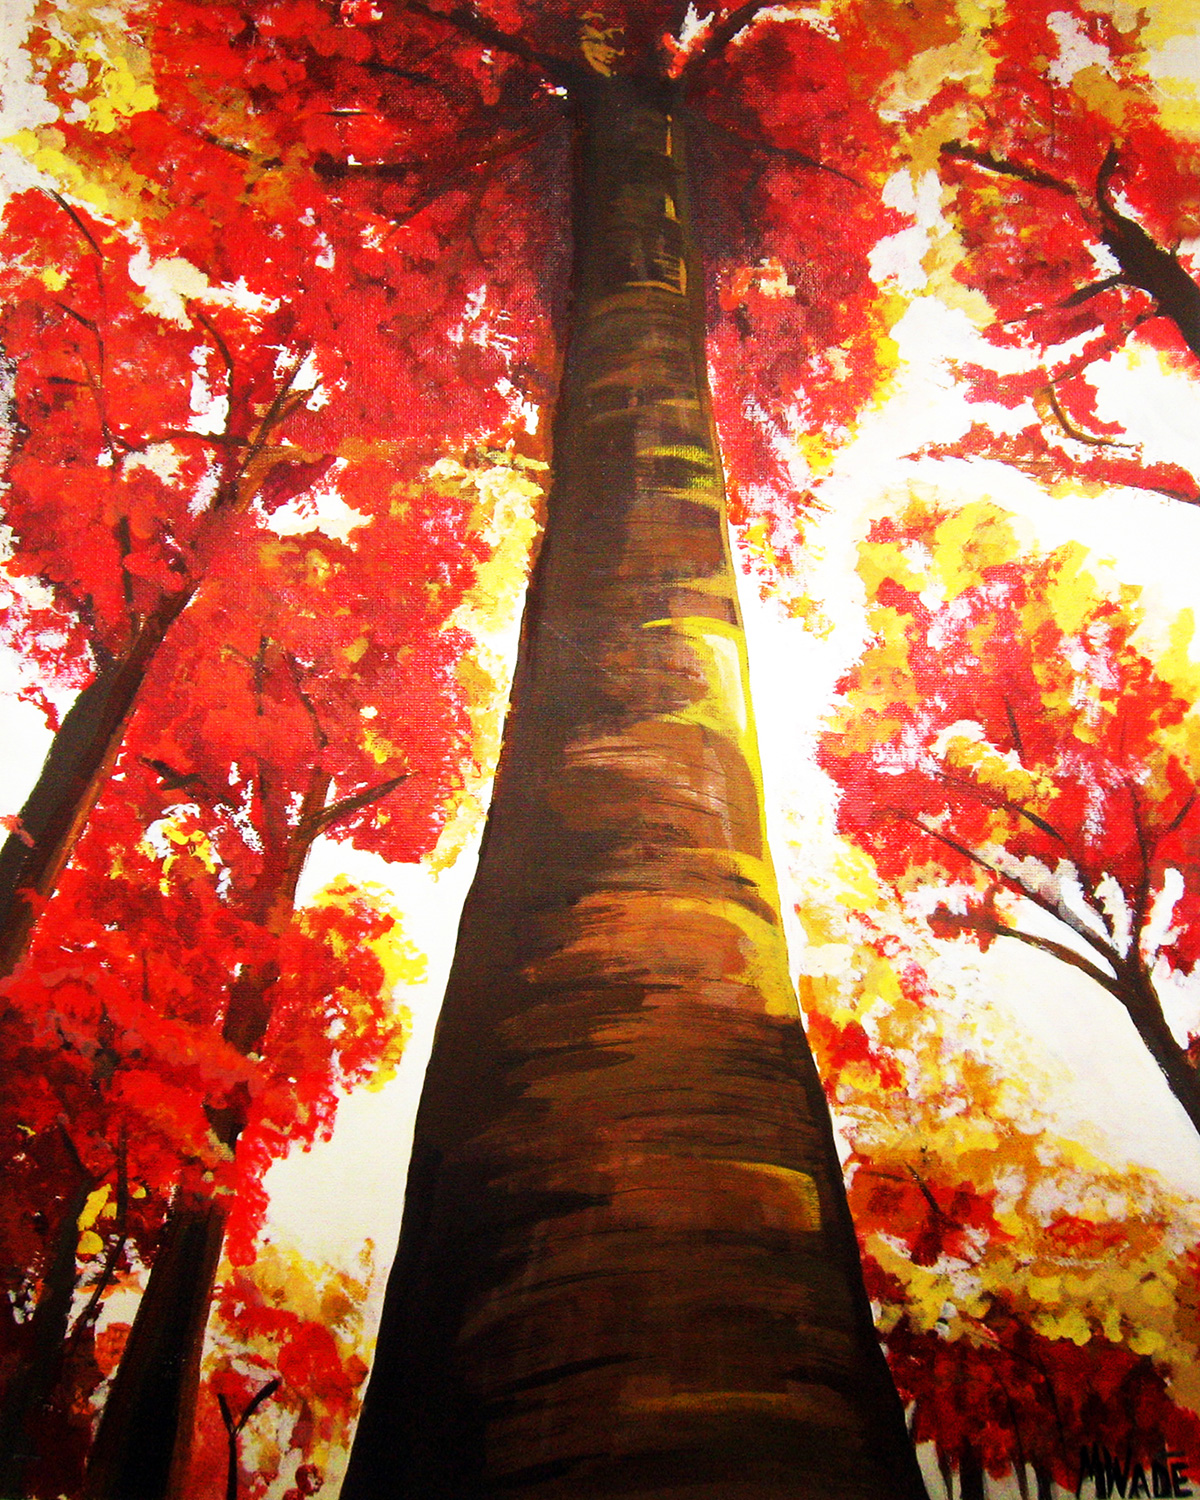 This painting got my through a hard time in my life for Fall pictures to paint